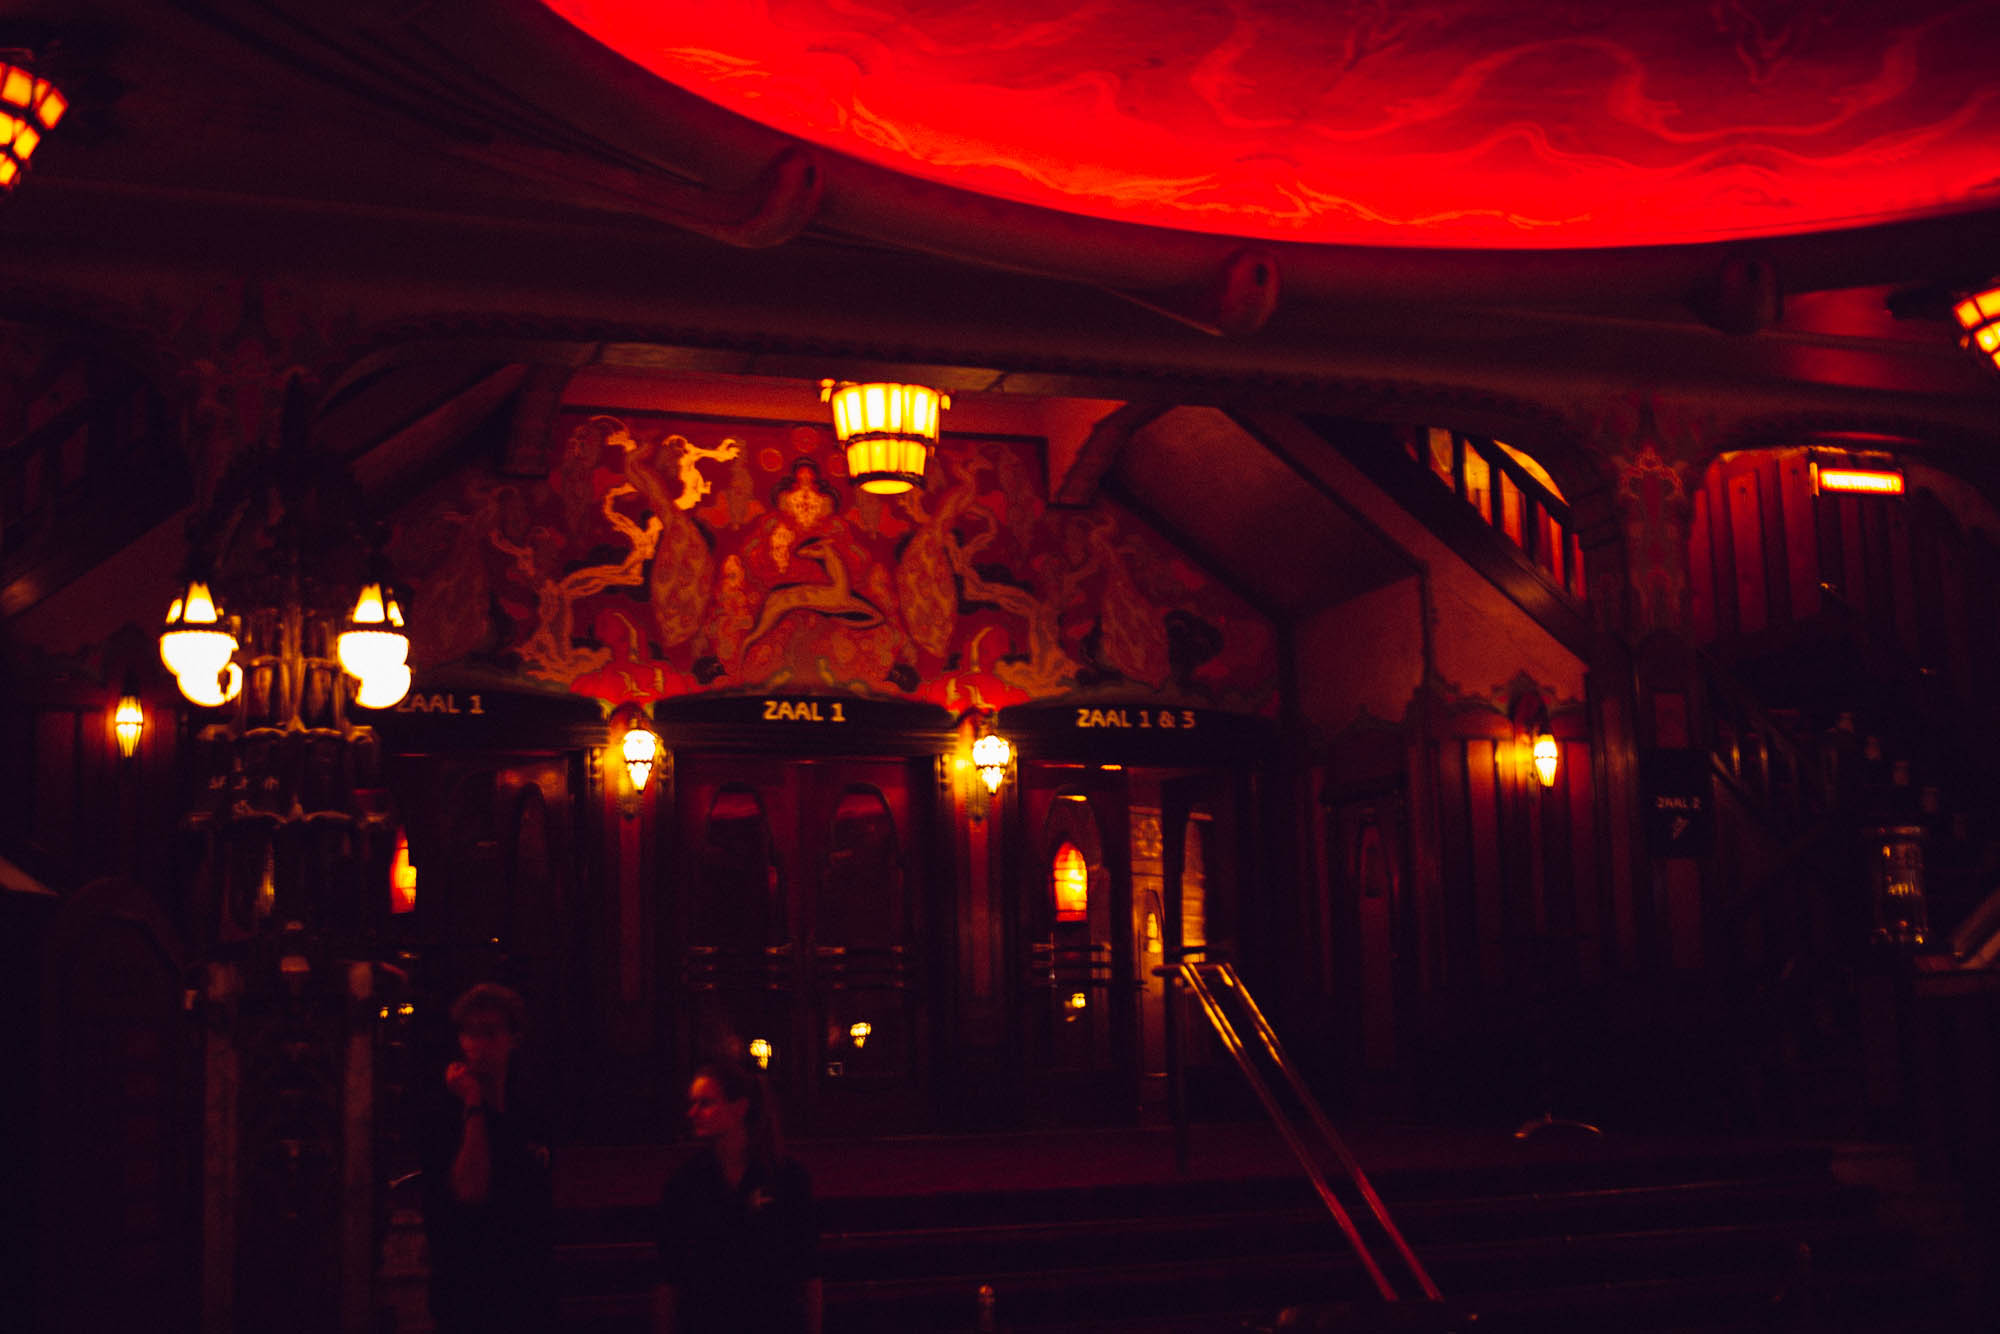 Inside the Tuschinski Theatre, Amsterdam